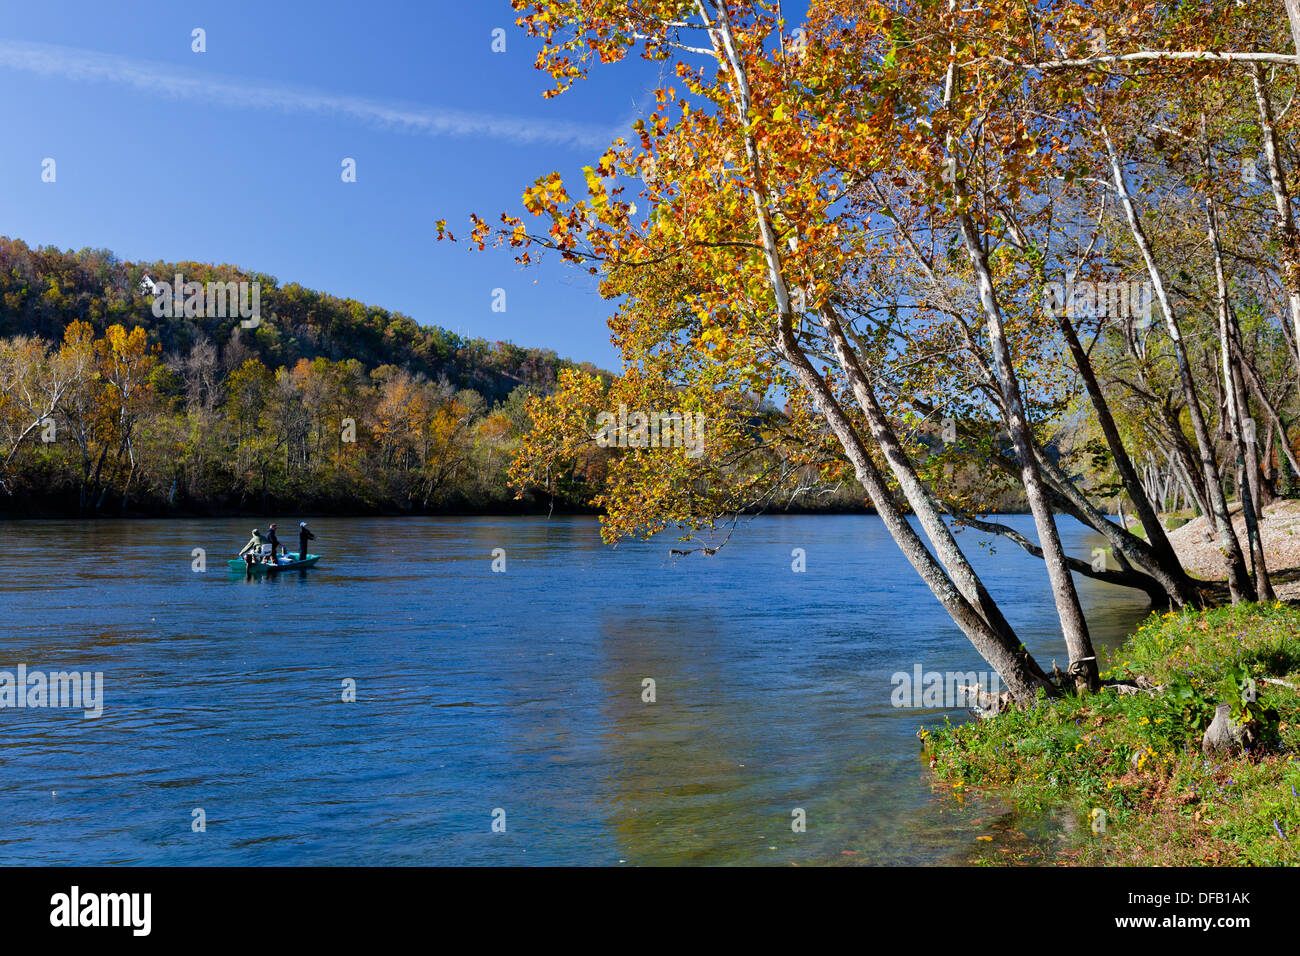 Fall foliage along the white river near the gaston s for Fishing resorts in arkansas